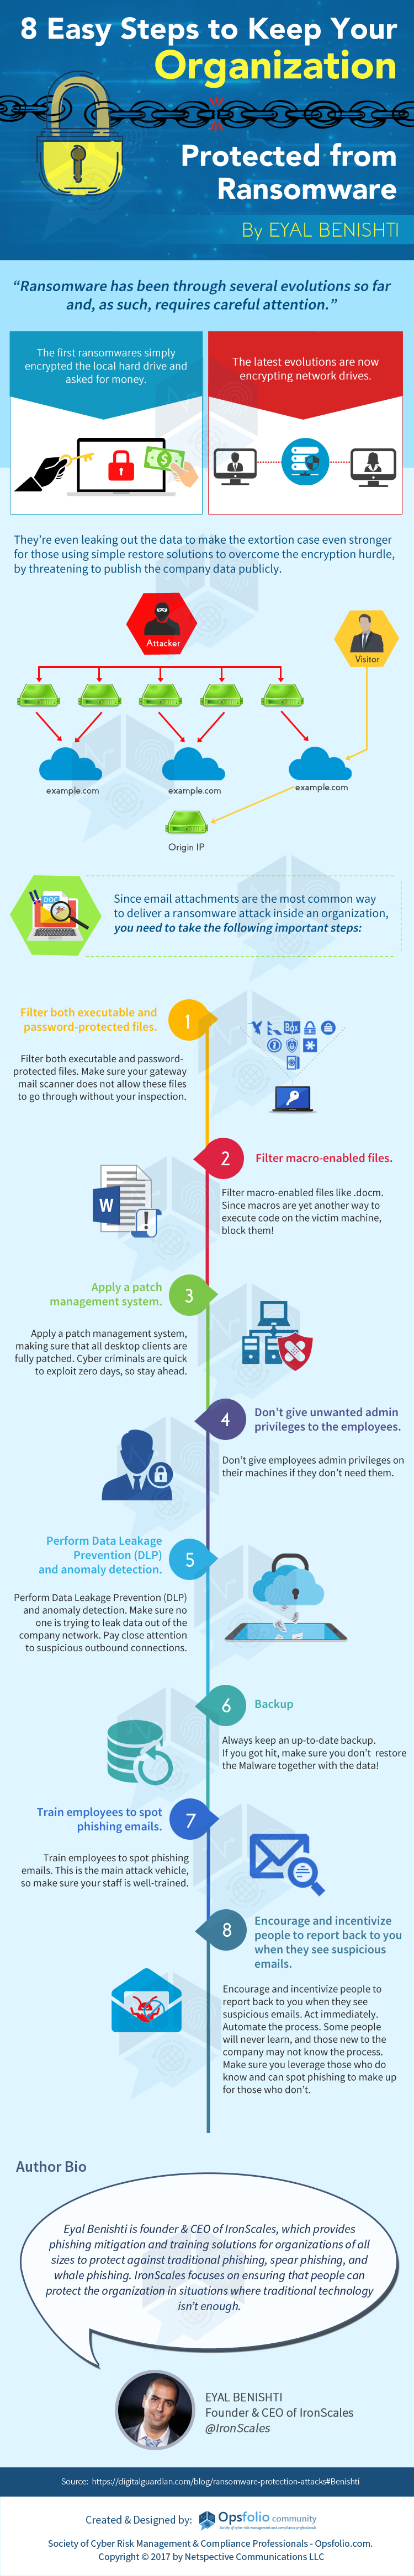 Ransomware Protection Steps